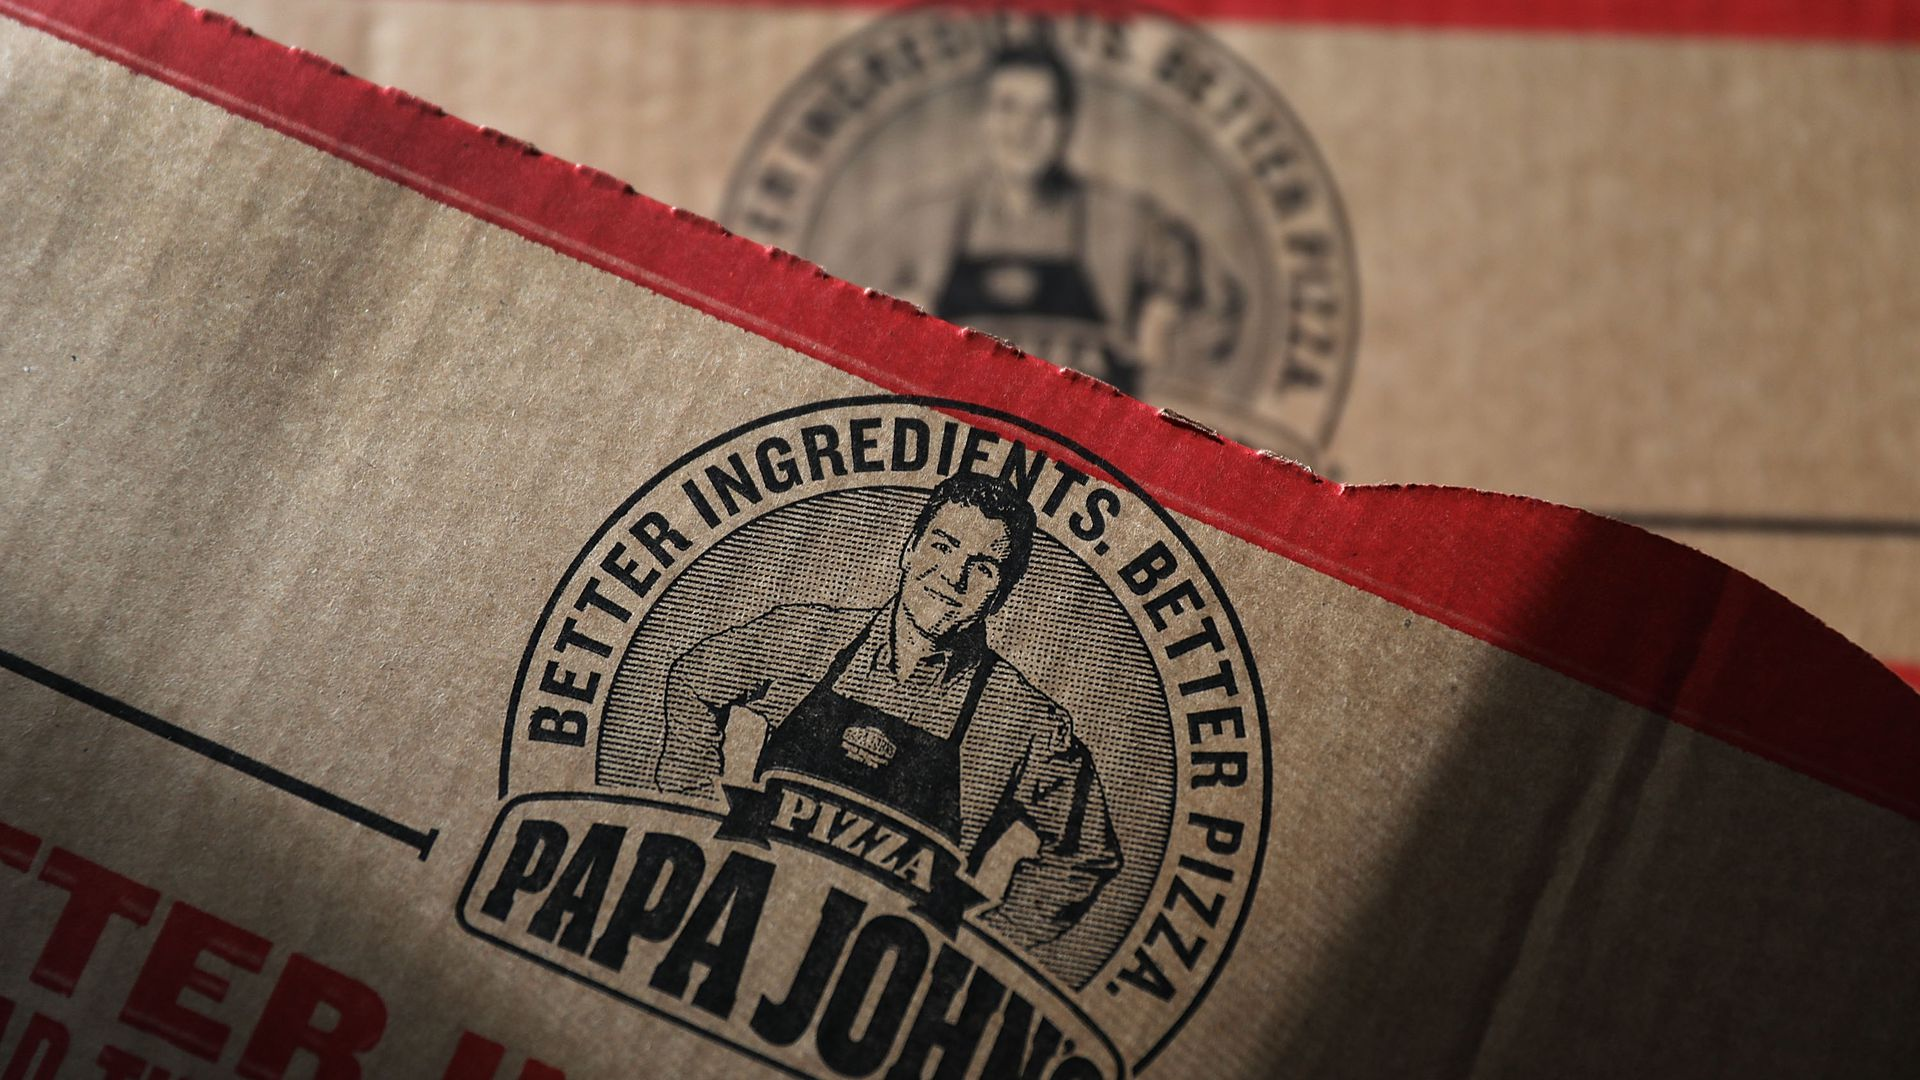 Papa John's pizza boxes